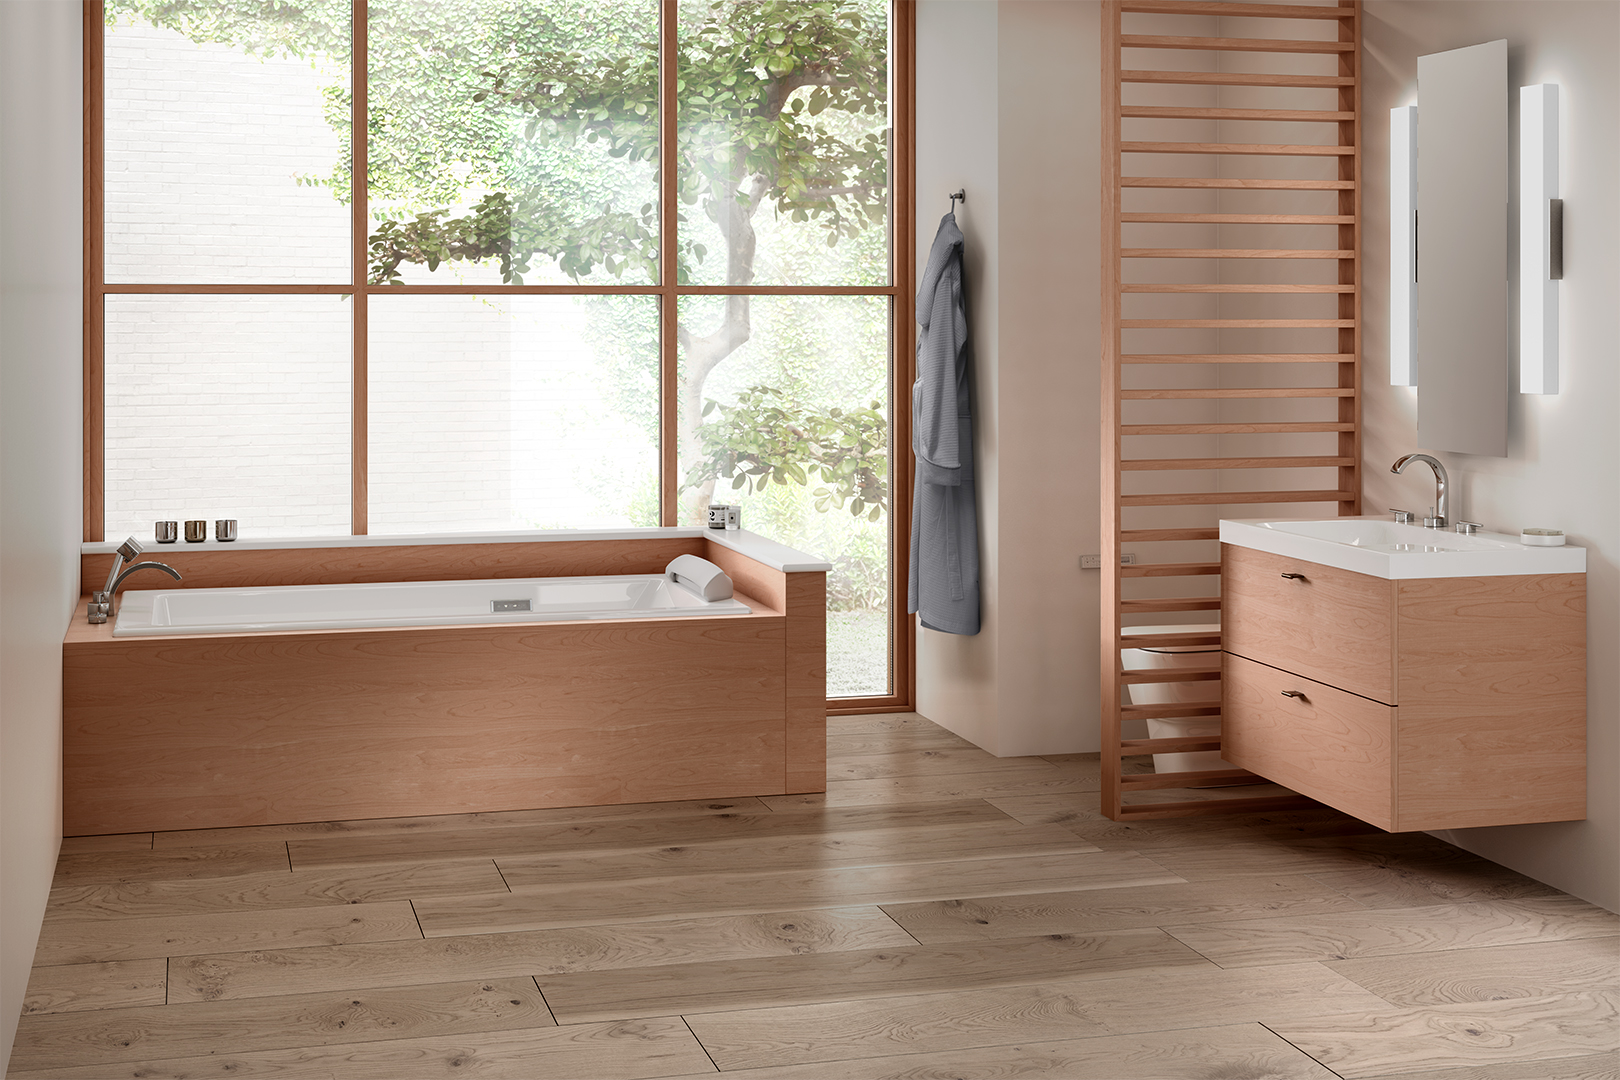 light hardwood bathroom with tree appearing through window wall